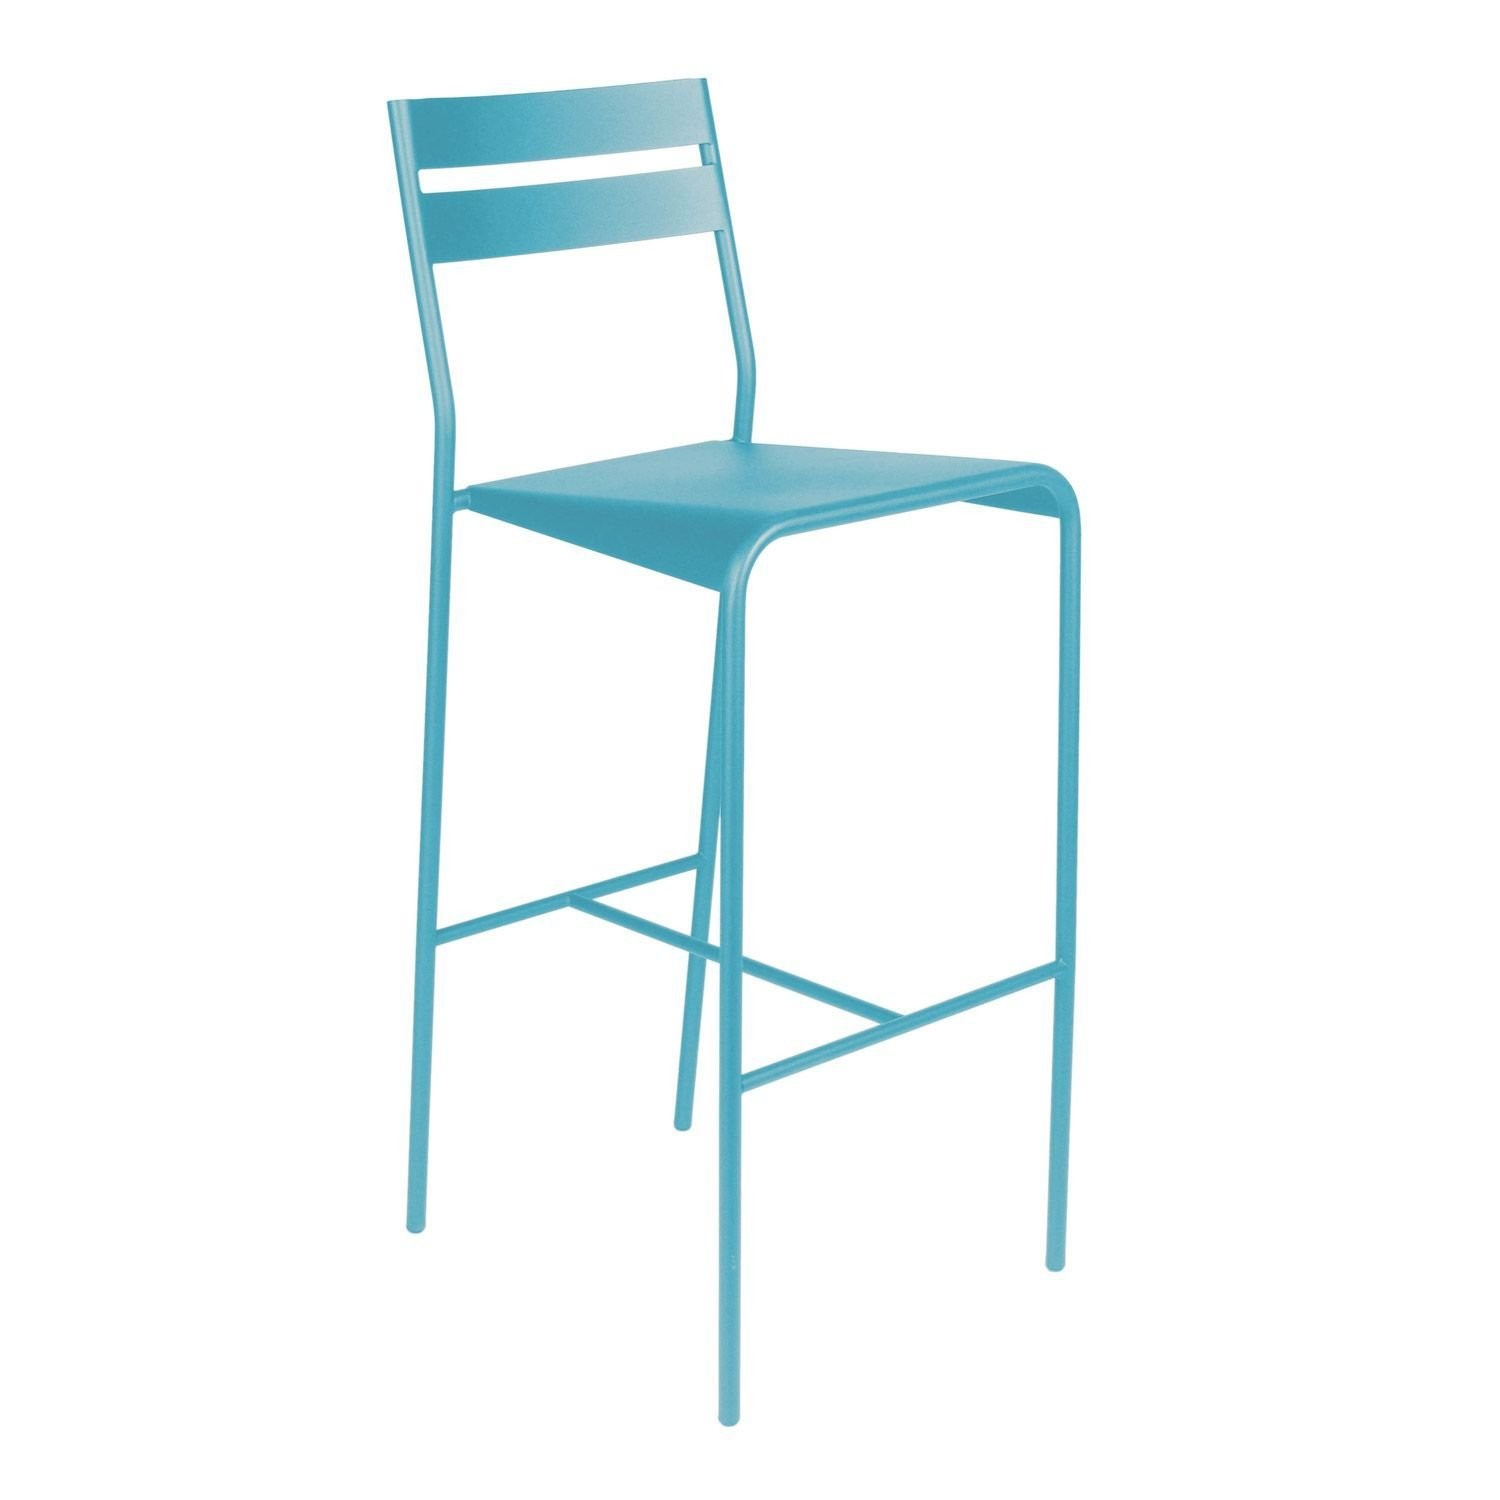 tabouret de bar facto de fermob bleu turquoise. Black Bedroom Furniture Sets. Home Design Ideas